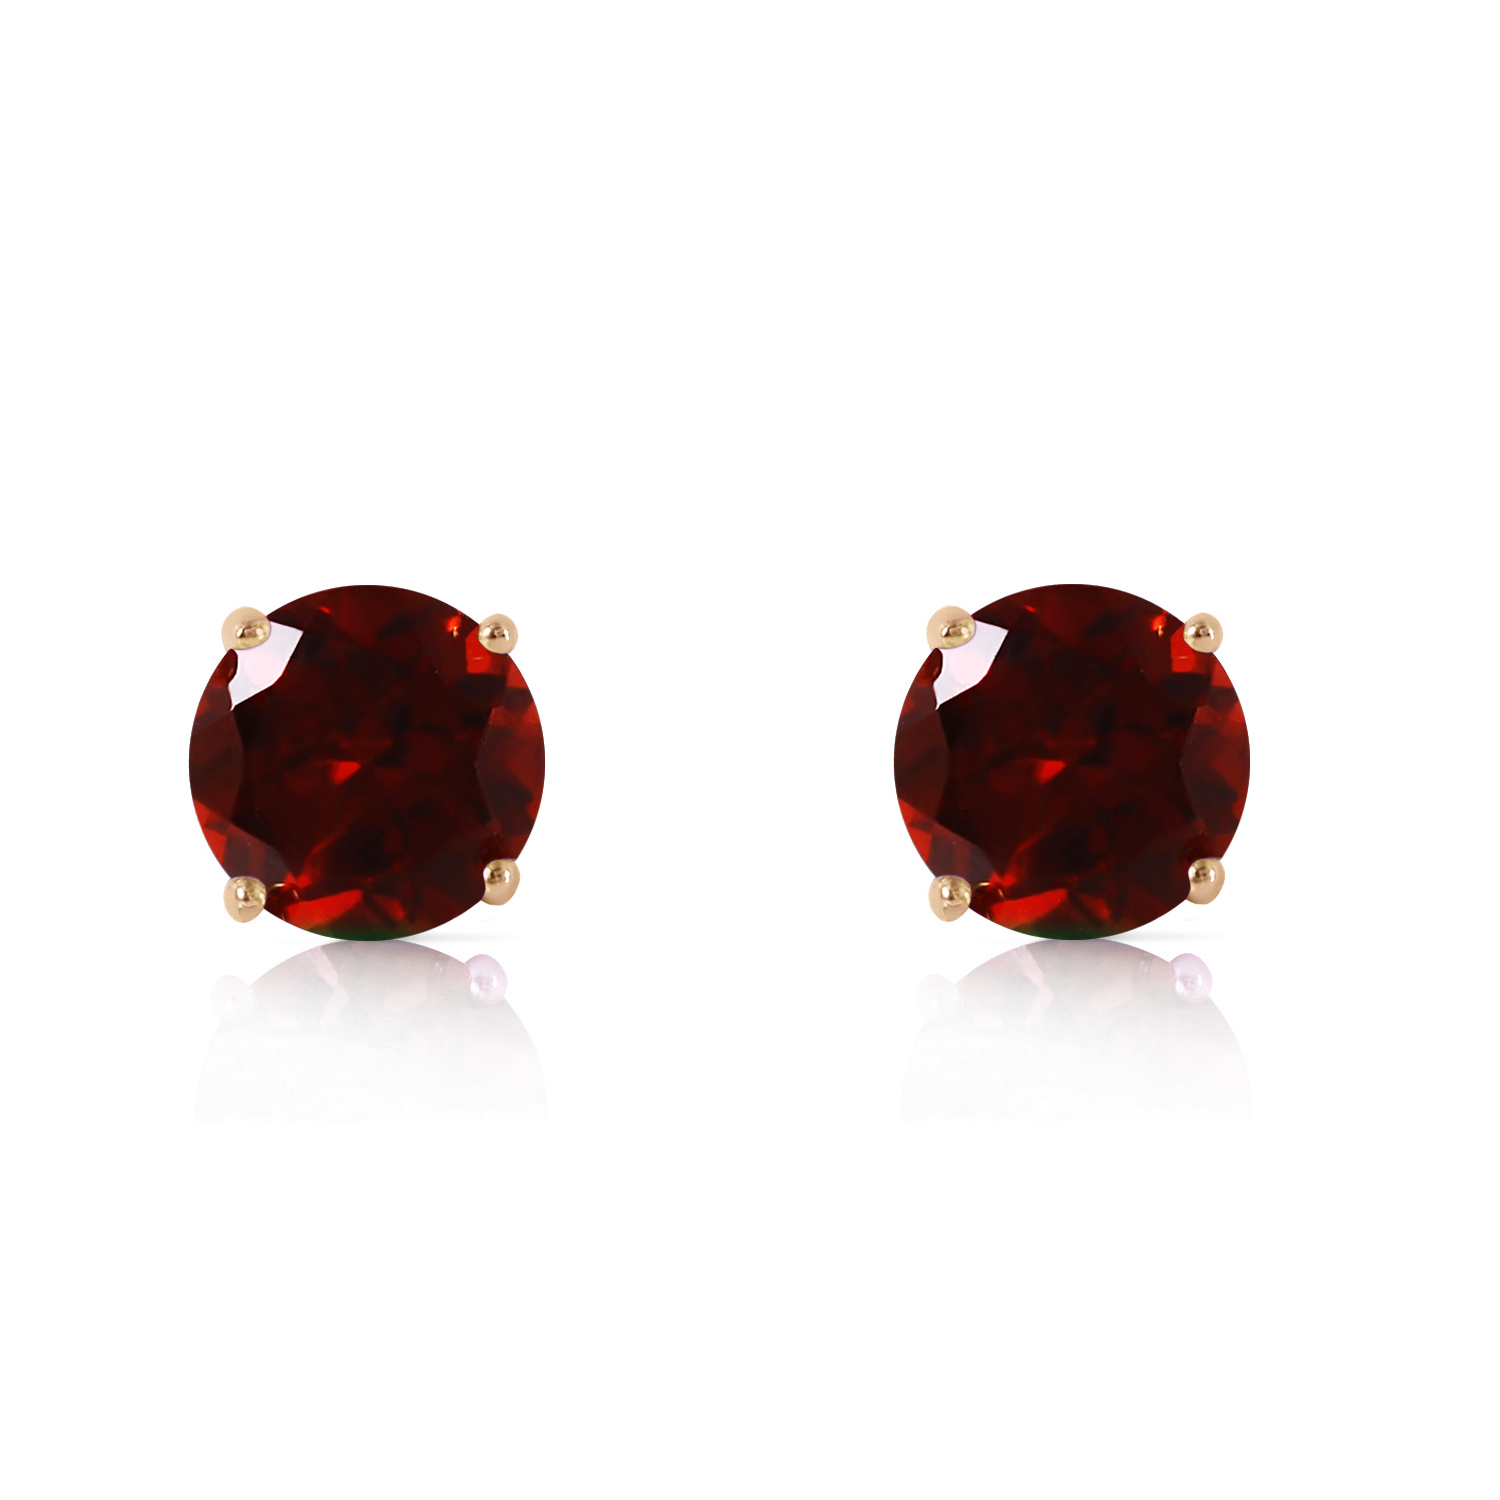 Primary image for 0.95 CTW 14K Solid Rose Gold Petite Garnet Stud Earrings